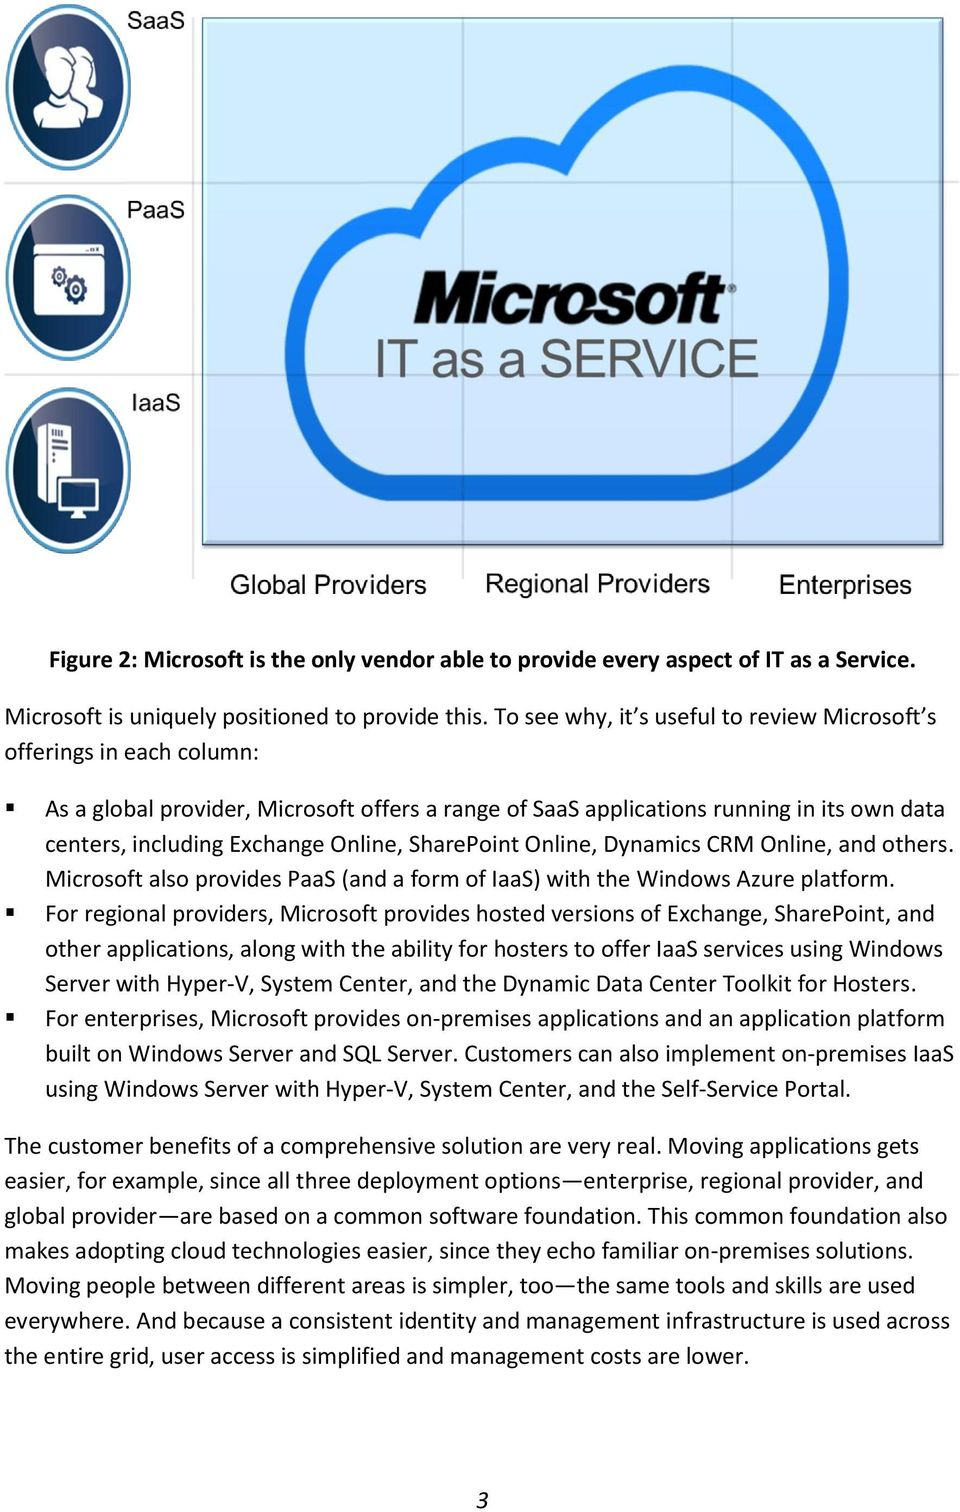 SharePoint Online, Dynamics CRM Online, and others. Microsoft also provides PaaS (and a form of IaaS) with the Windows Azure platform.